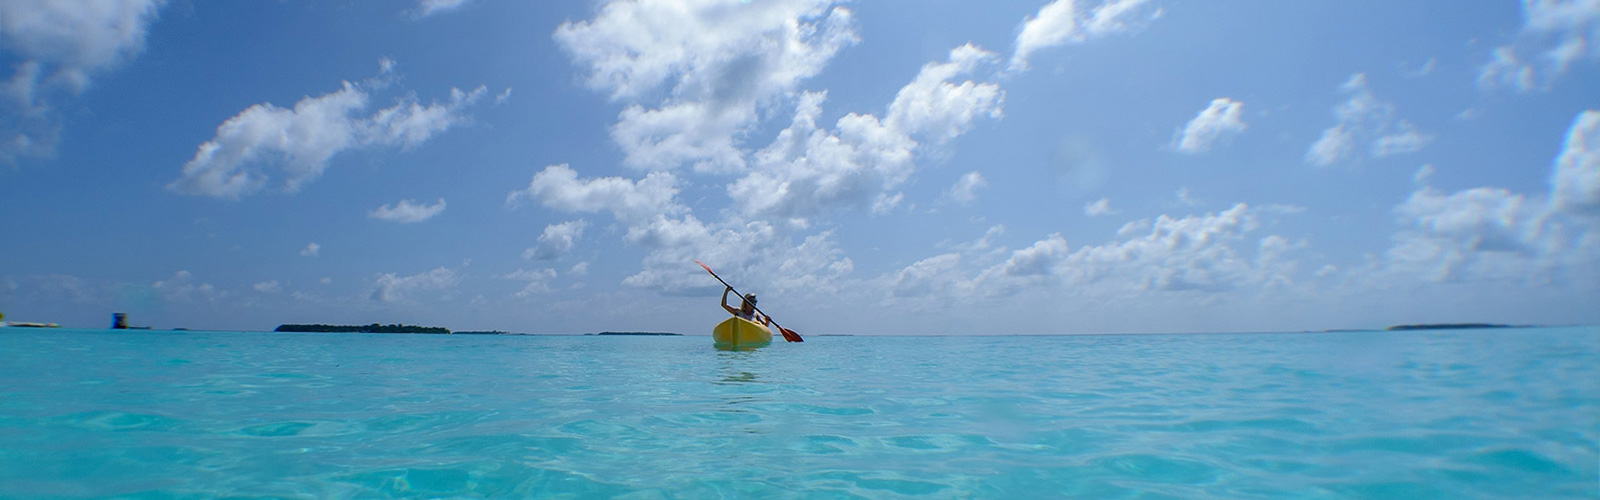 Maldives Water Sports Kayaking